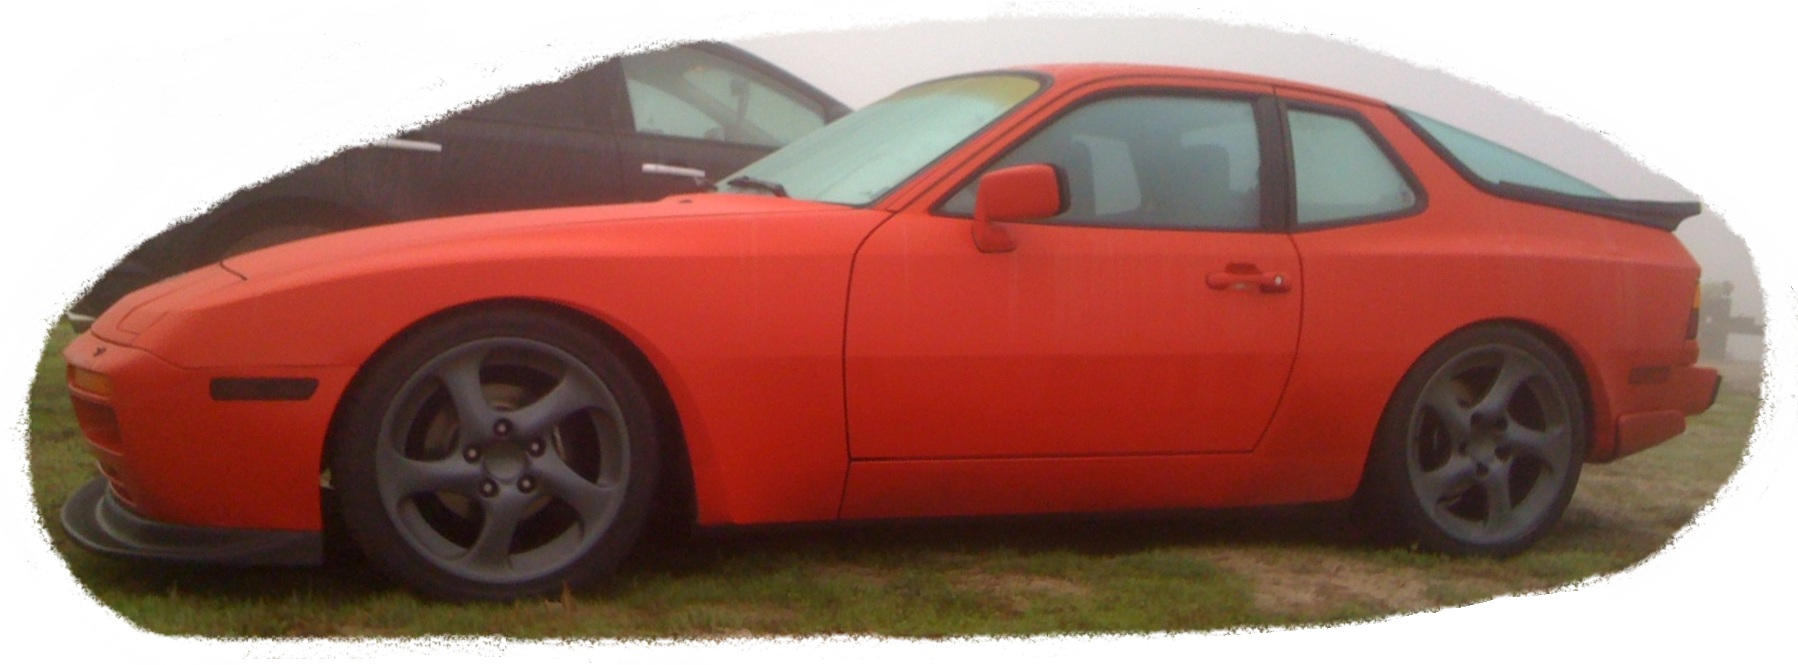 Red 1986 Porsche 944 Turbo